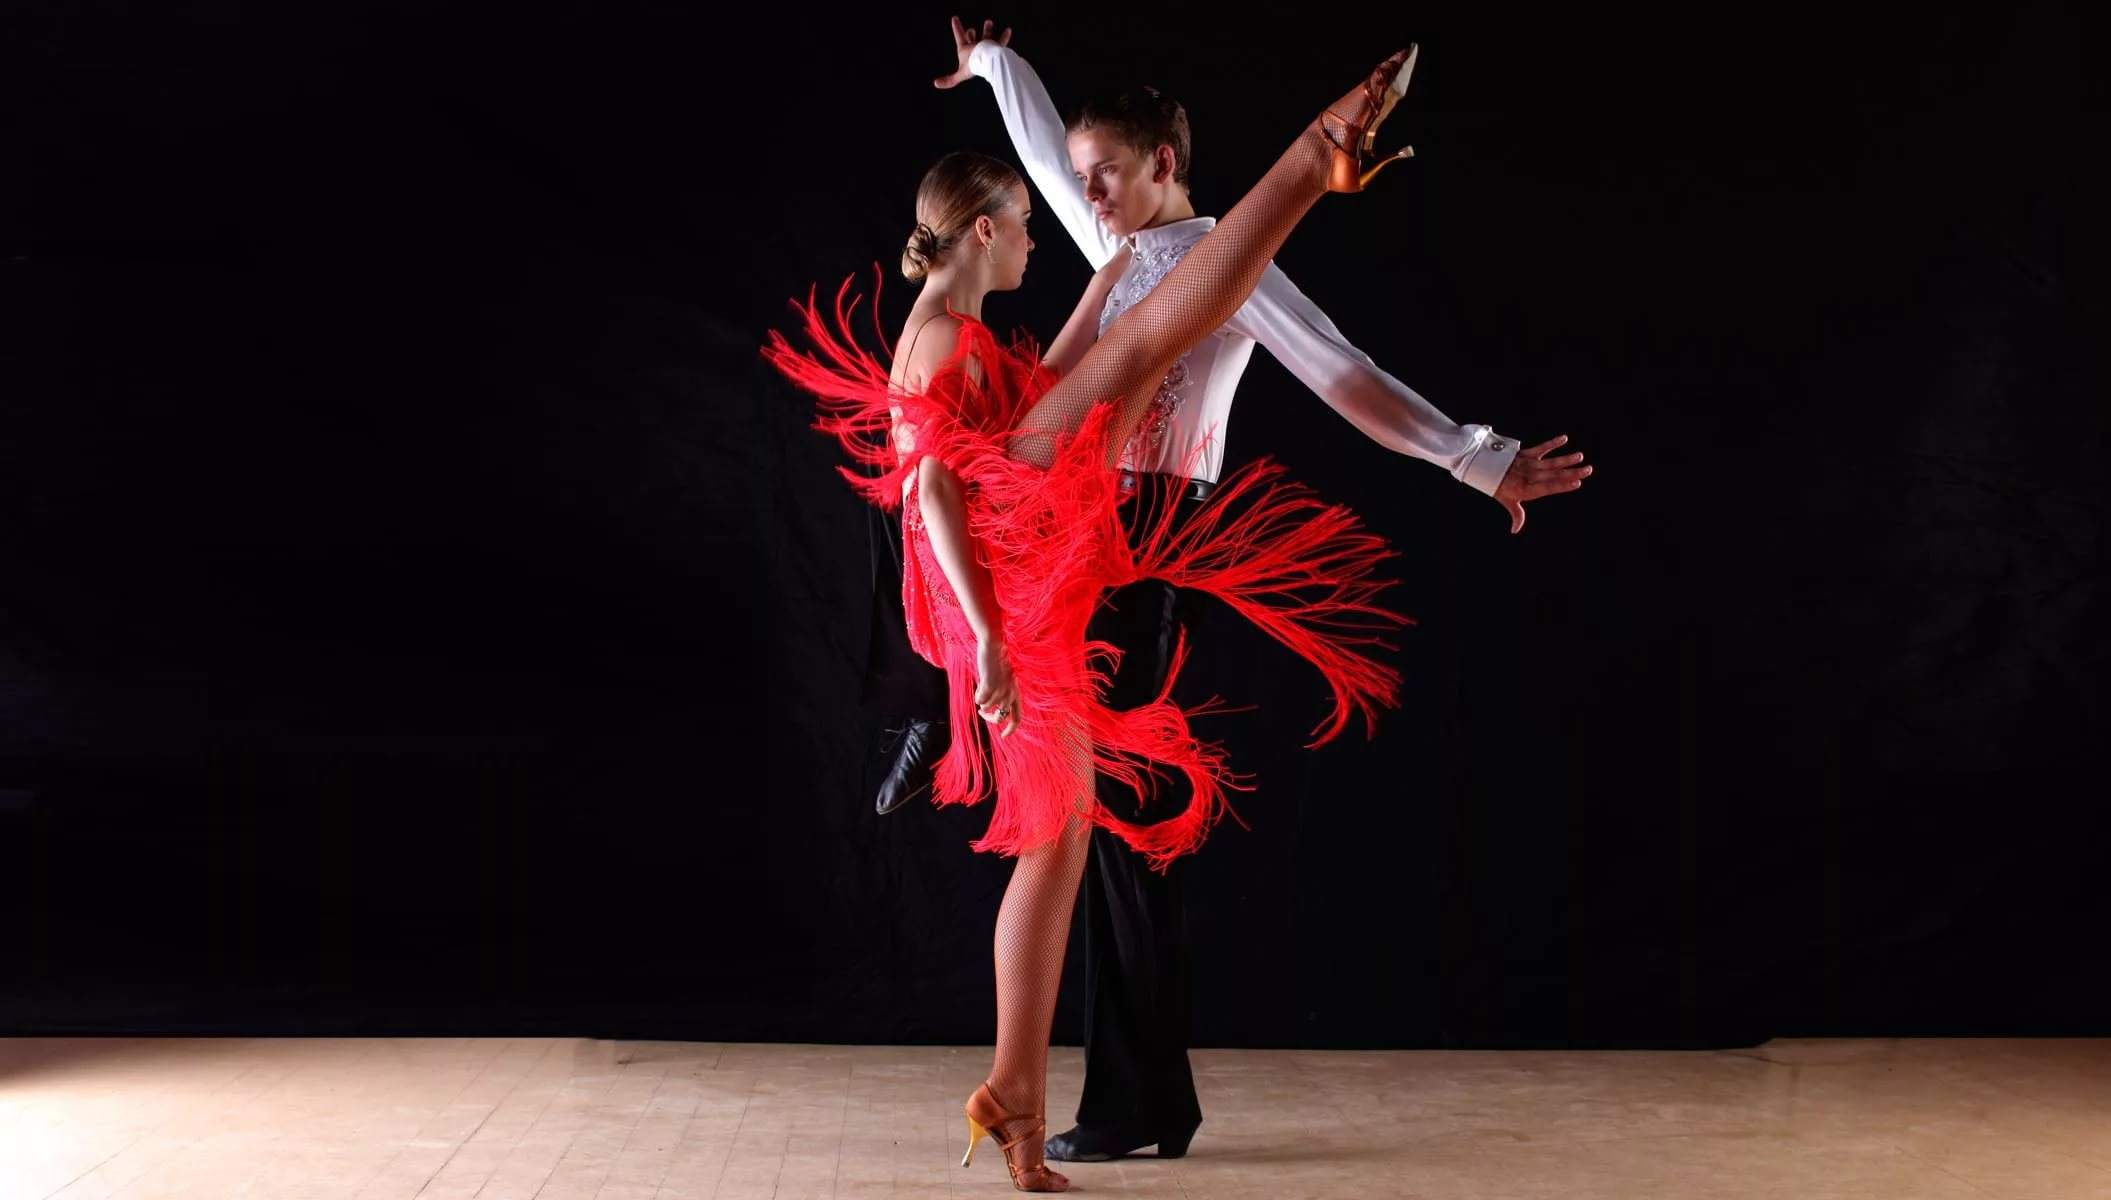 Toronto Latin Dance Salsa school is located at Bloor amp Spadina in Downtown Toronto Ontario All of Torontos best salsa dance clubs are located around us